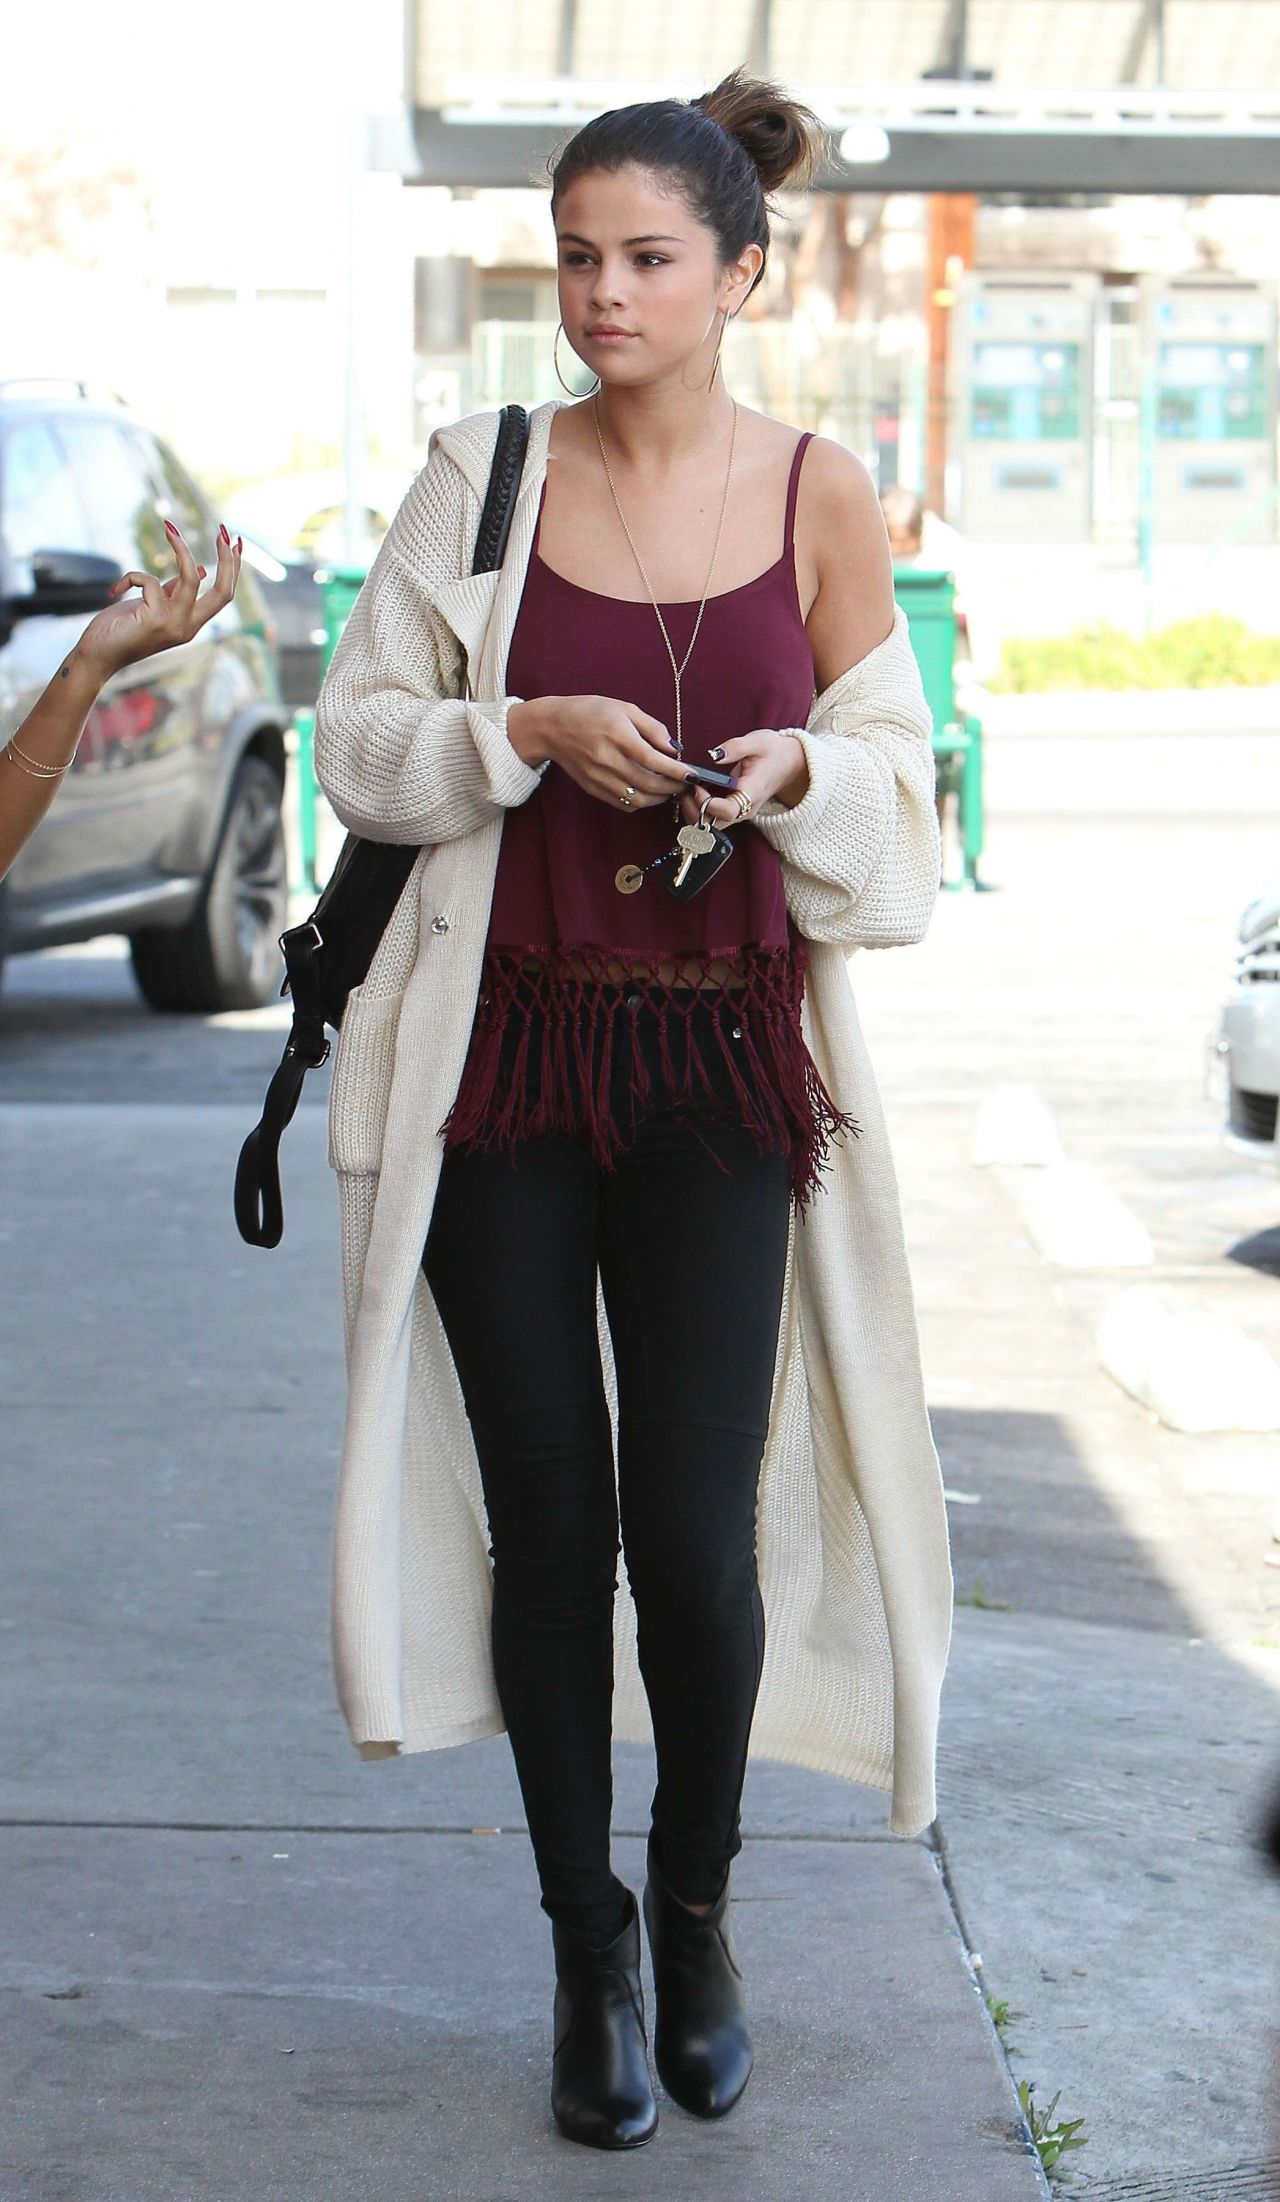 Selena Gomez In Tights Out In Los Angeles February 2014